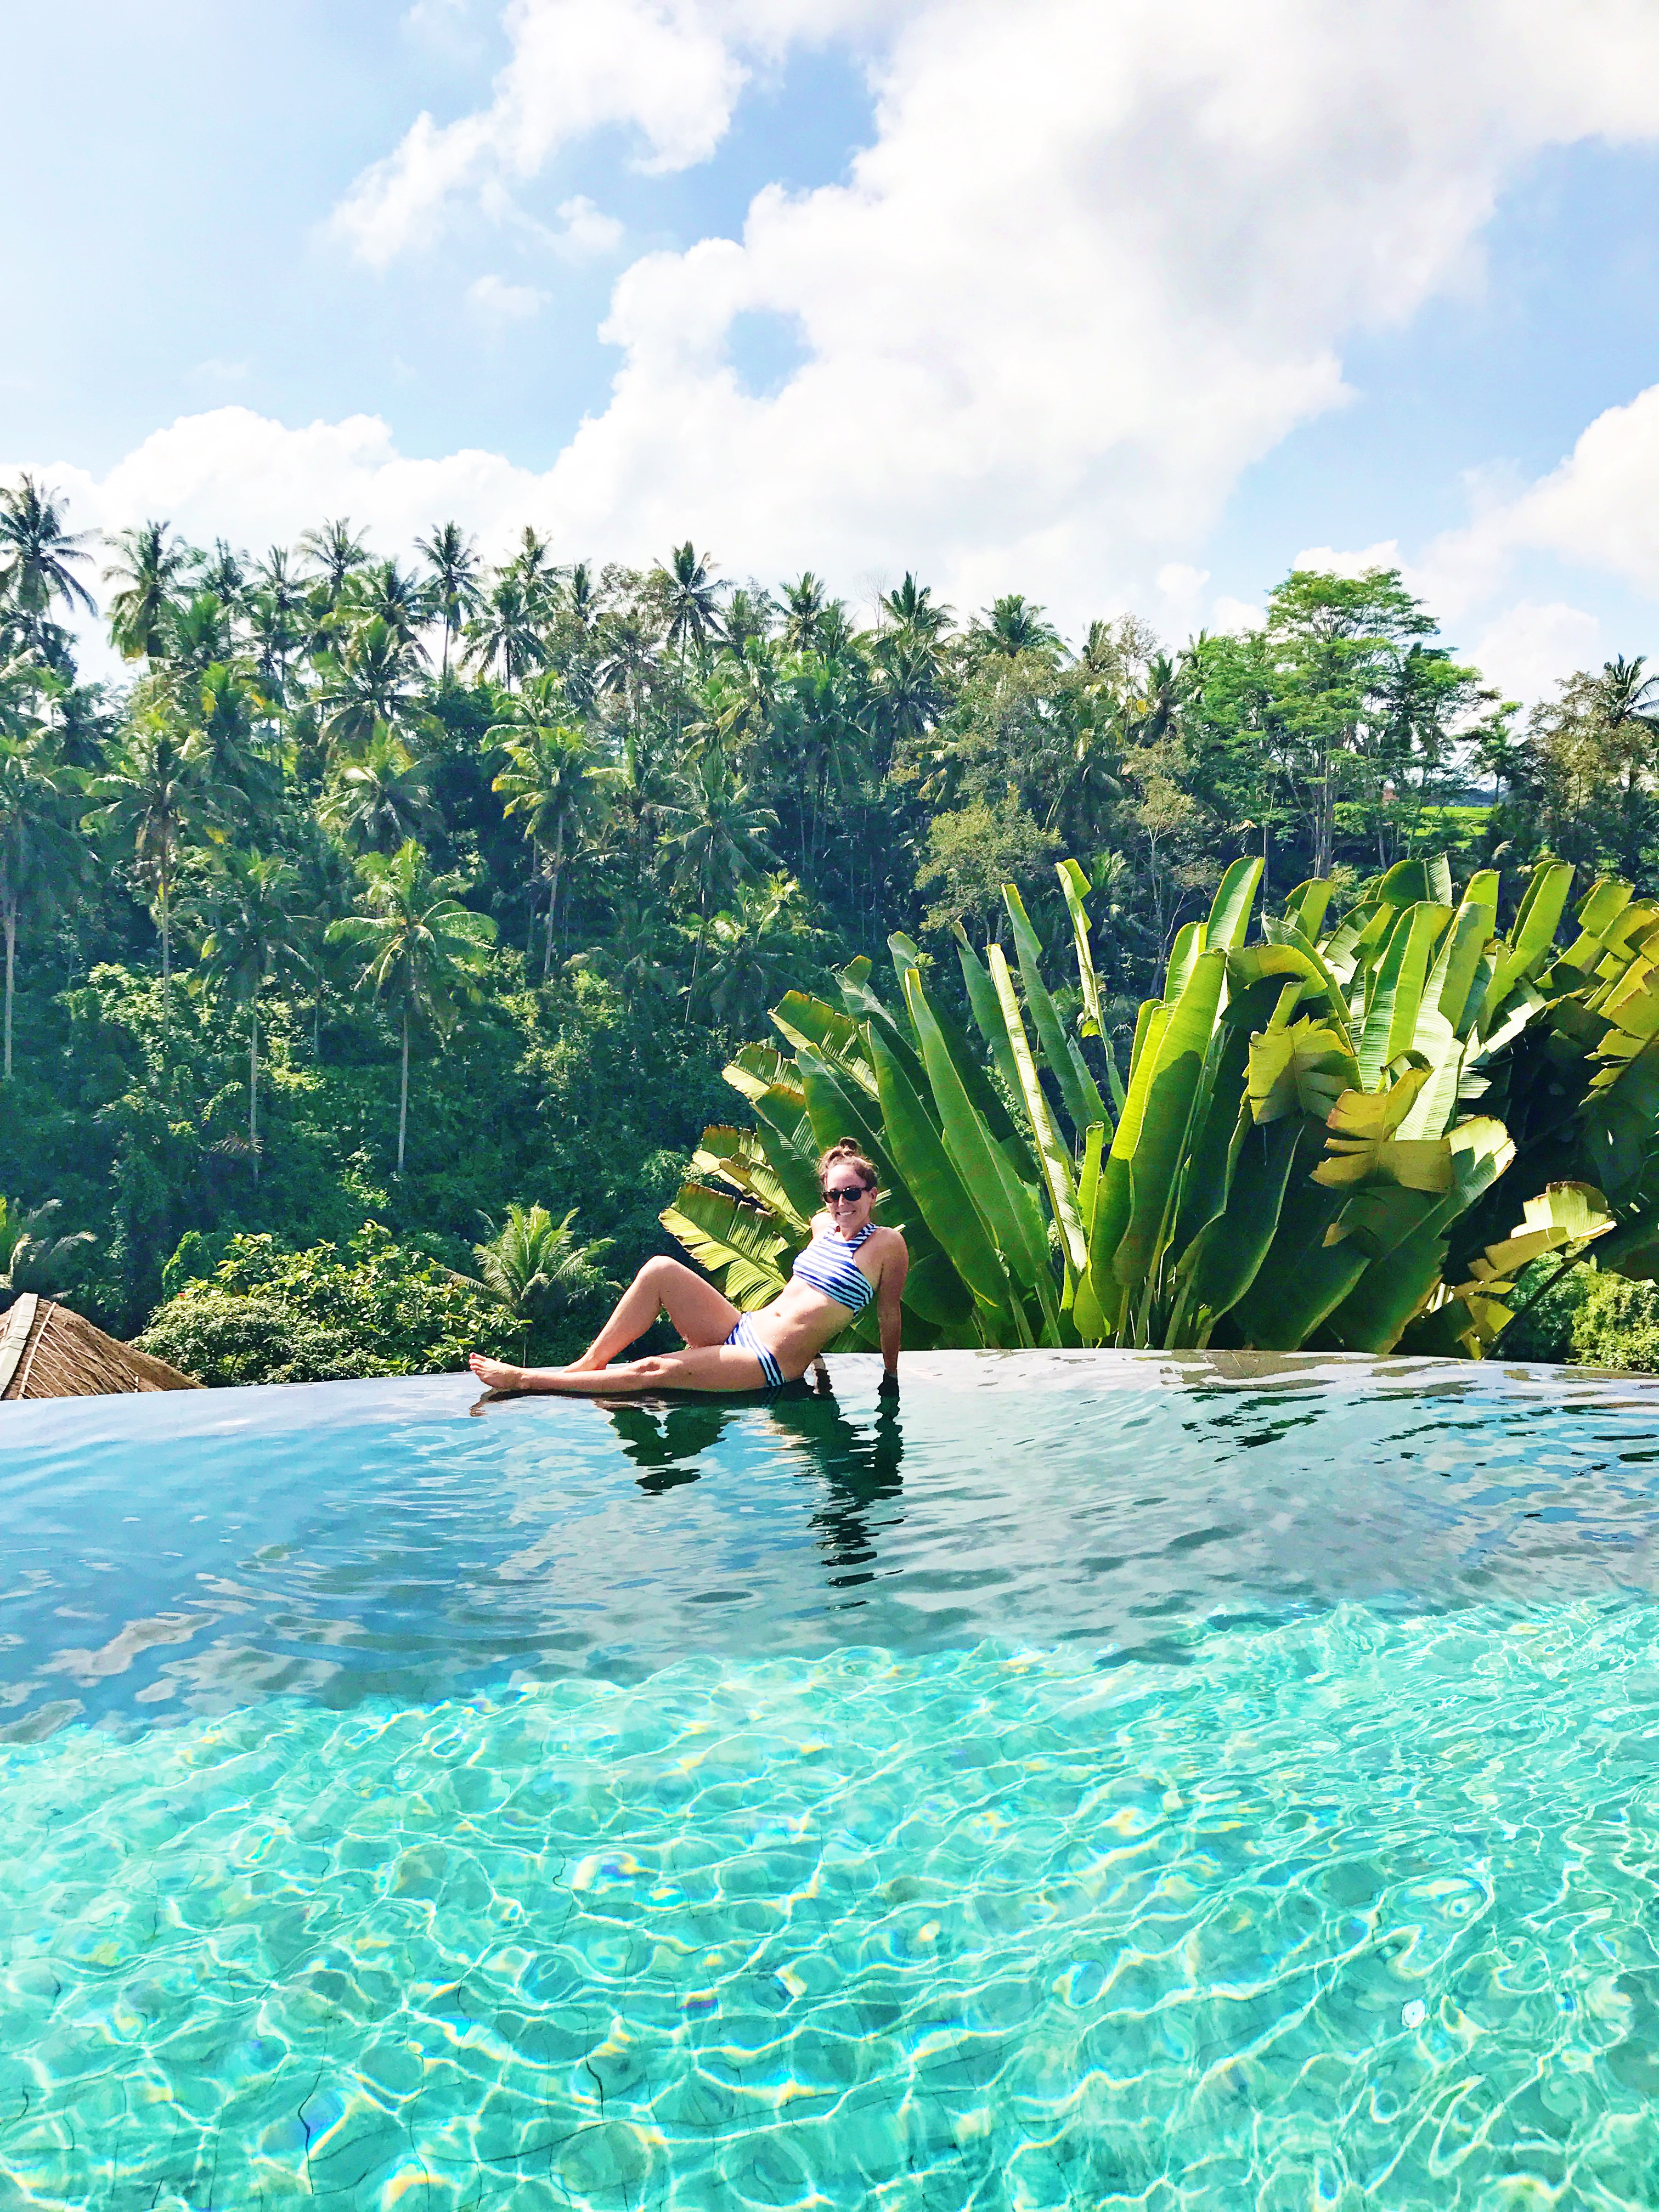 Our Stay At Viceroy Bali - Ubud, Bali, Indonesia - The Viceroy Bali, Luxury Hotel - The Viceroy Bali - Bali Ubud Hotels - The Viceroy Bali Hotel - Hotel Viceroy Bali #ubud #bali #travel #luxury #luxuryhotel